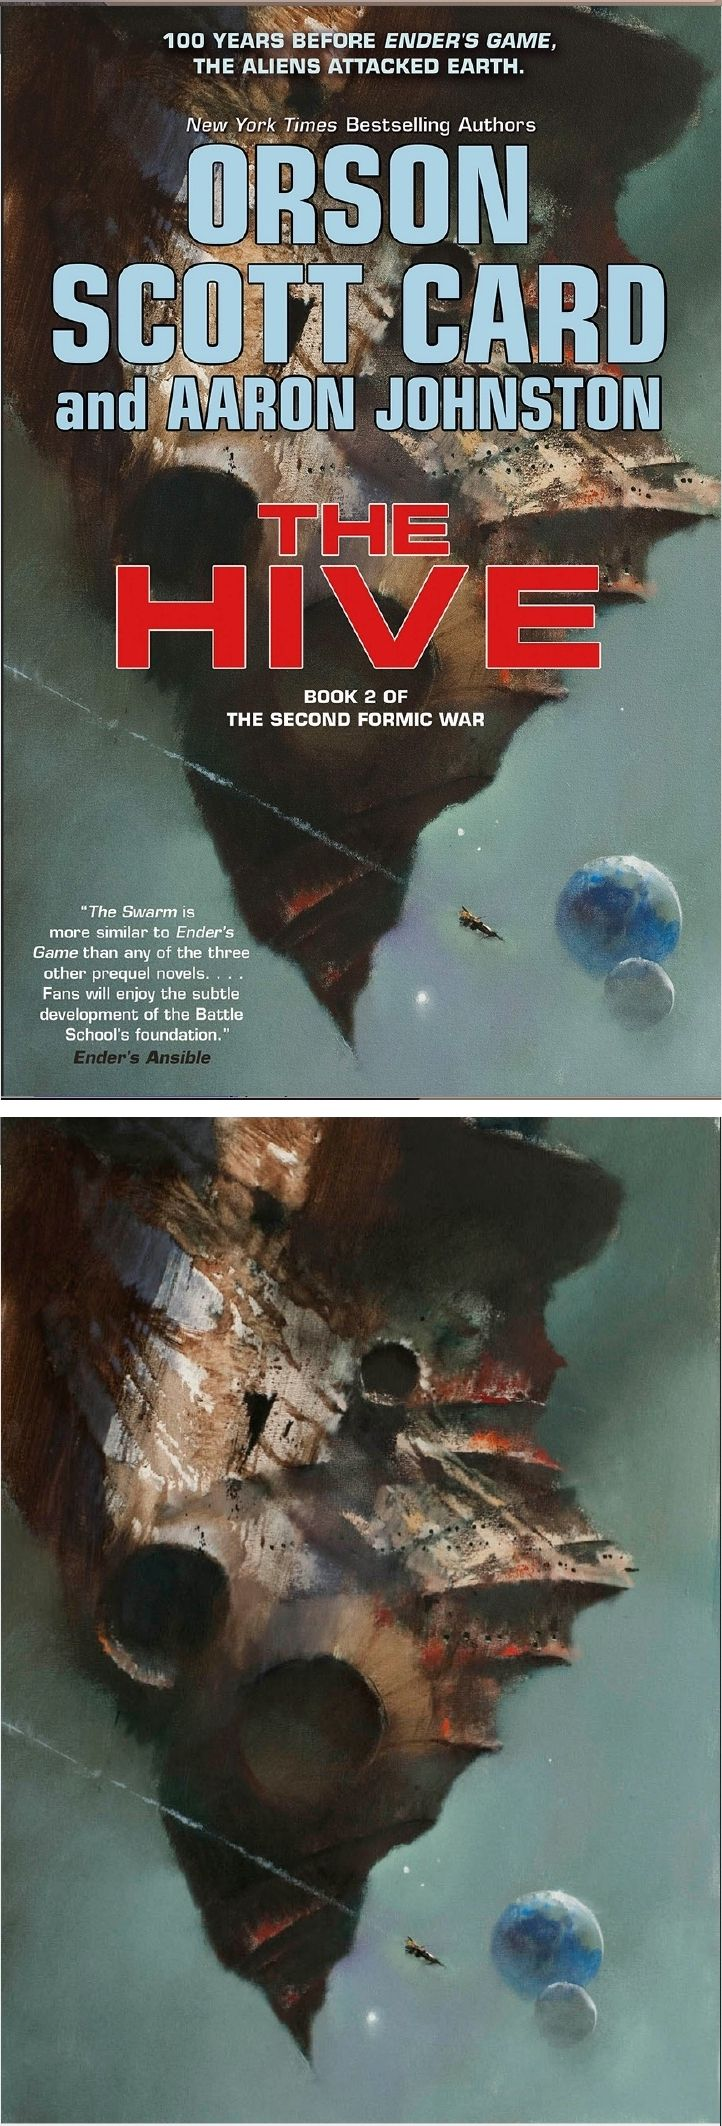 JOHN HARRIS The Hive (Second Formic War 2) by Orson